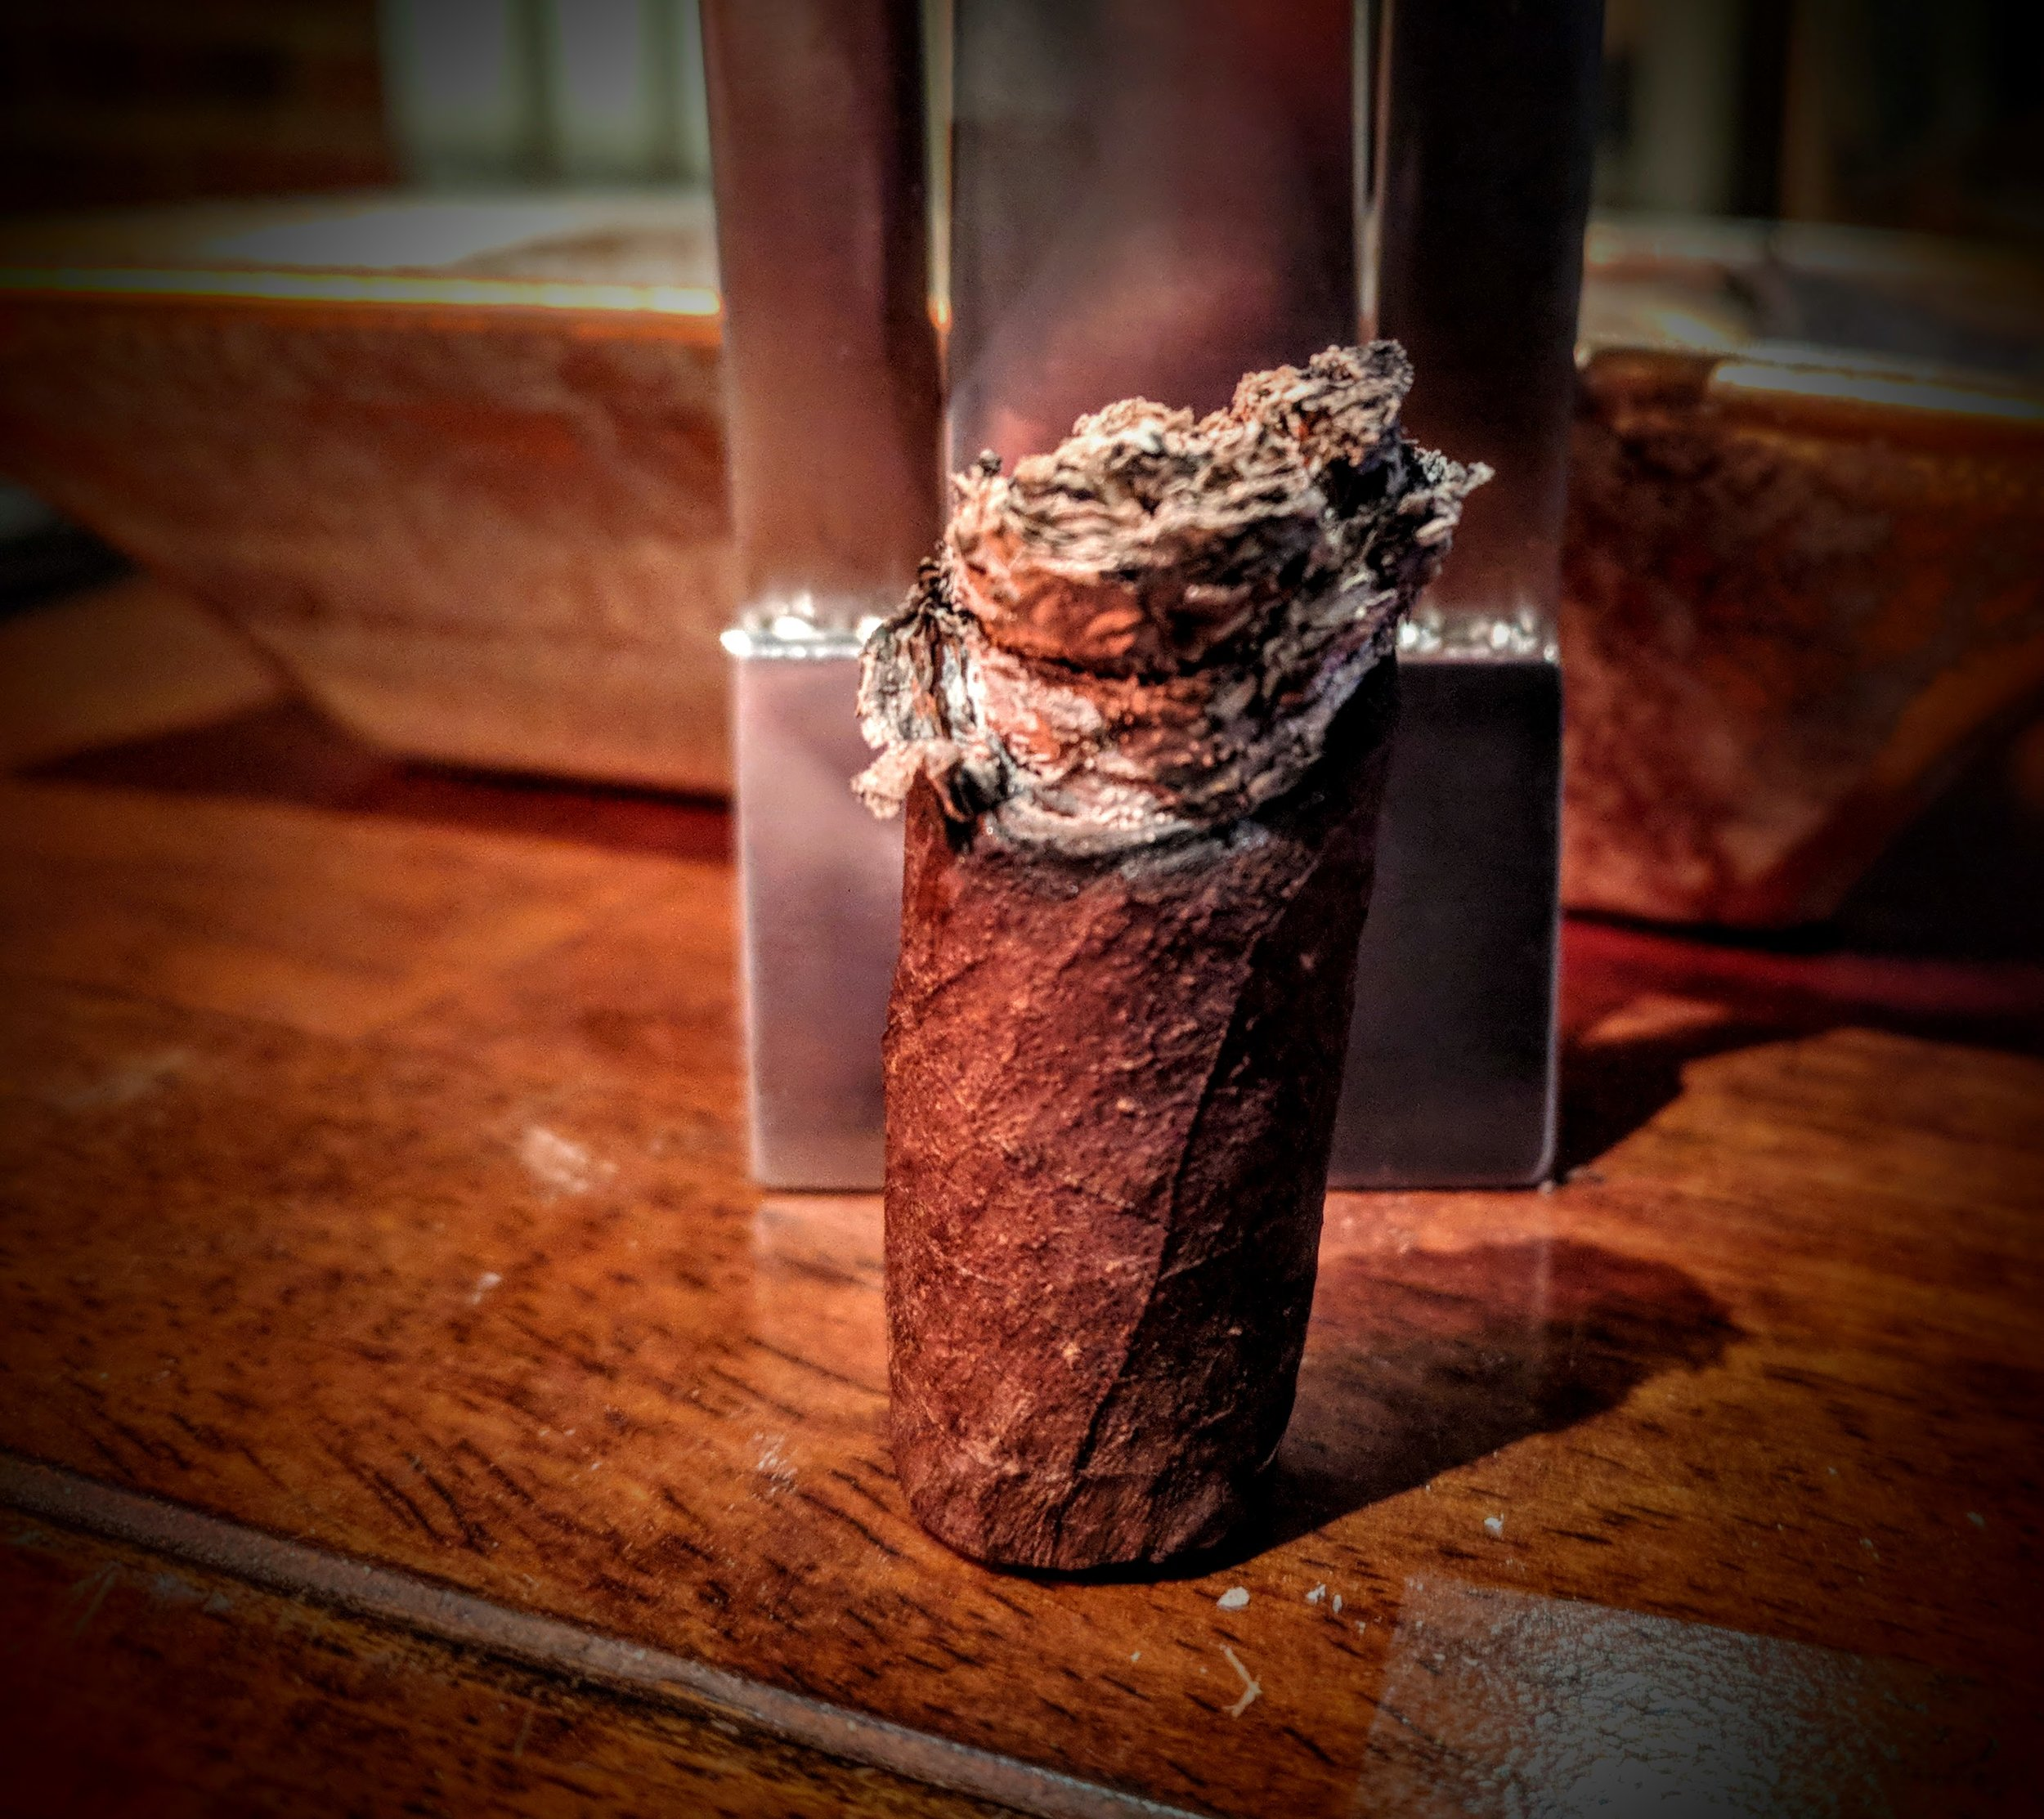 SKIP THE SECONDS ;  GO FOR THE FIRSTS.  - Rating:  5.0 / 10.0Let's get one thing out of the way - this cigar is only acceptable in that it'll run you just north of a dollar.  It's UGLY, NOT VERY FLAVORFUL AND best suited to enjoy while doing a little yardwork.  If you're looking for a cigar to sit down and relax with, I'd reach for something ELSE from Oliva's PHENOMENAL PORTFOLIO.  Of course the trade off is that those sticks will run you SEVERAL times more.  Not a terrible cigar, but not one I'd smoke again any time soon.